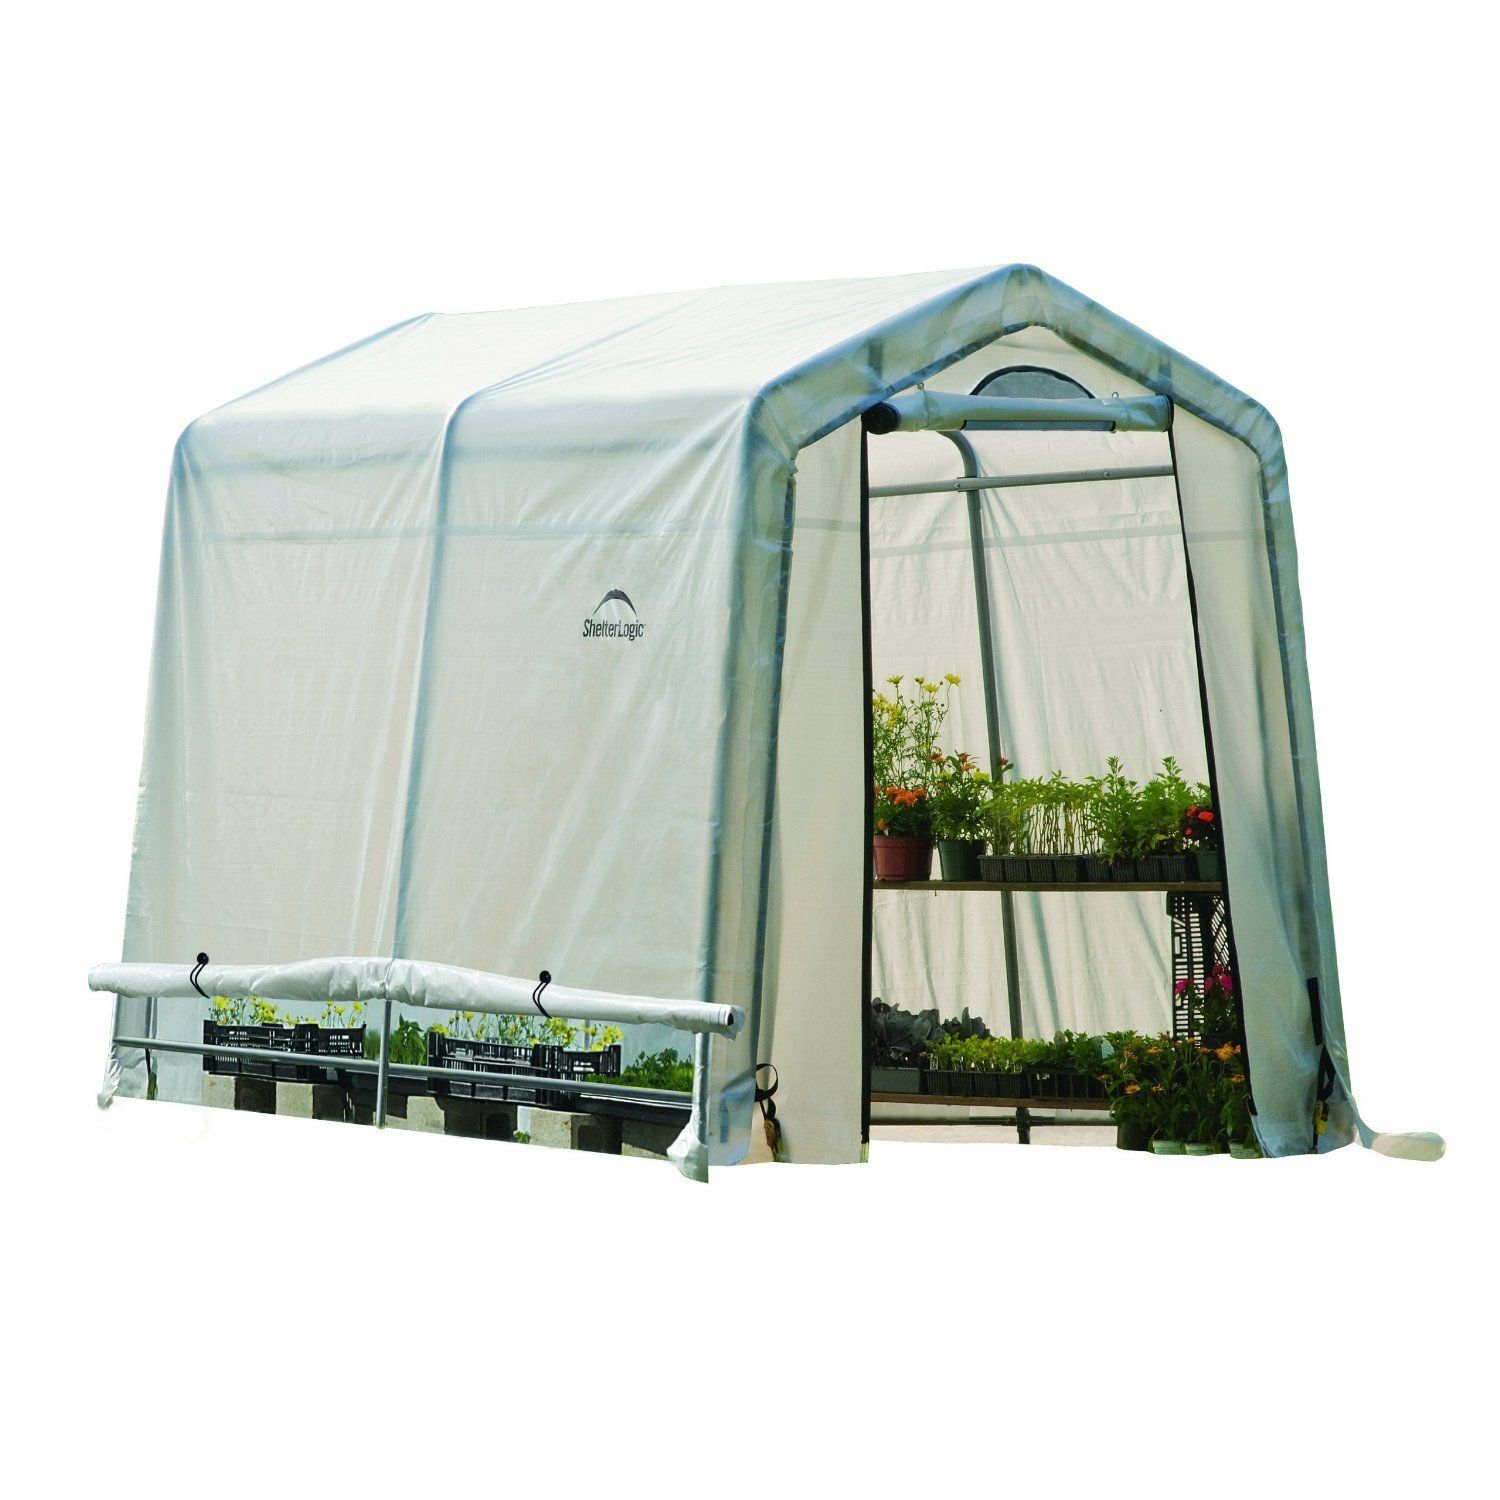 quality shelterlogic box shed canvas canopy canvashed sheds garage nw canopytoragehelterlogic storage in a green qualityheds